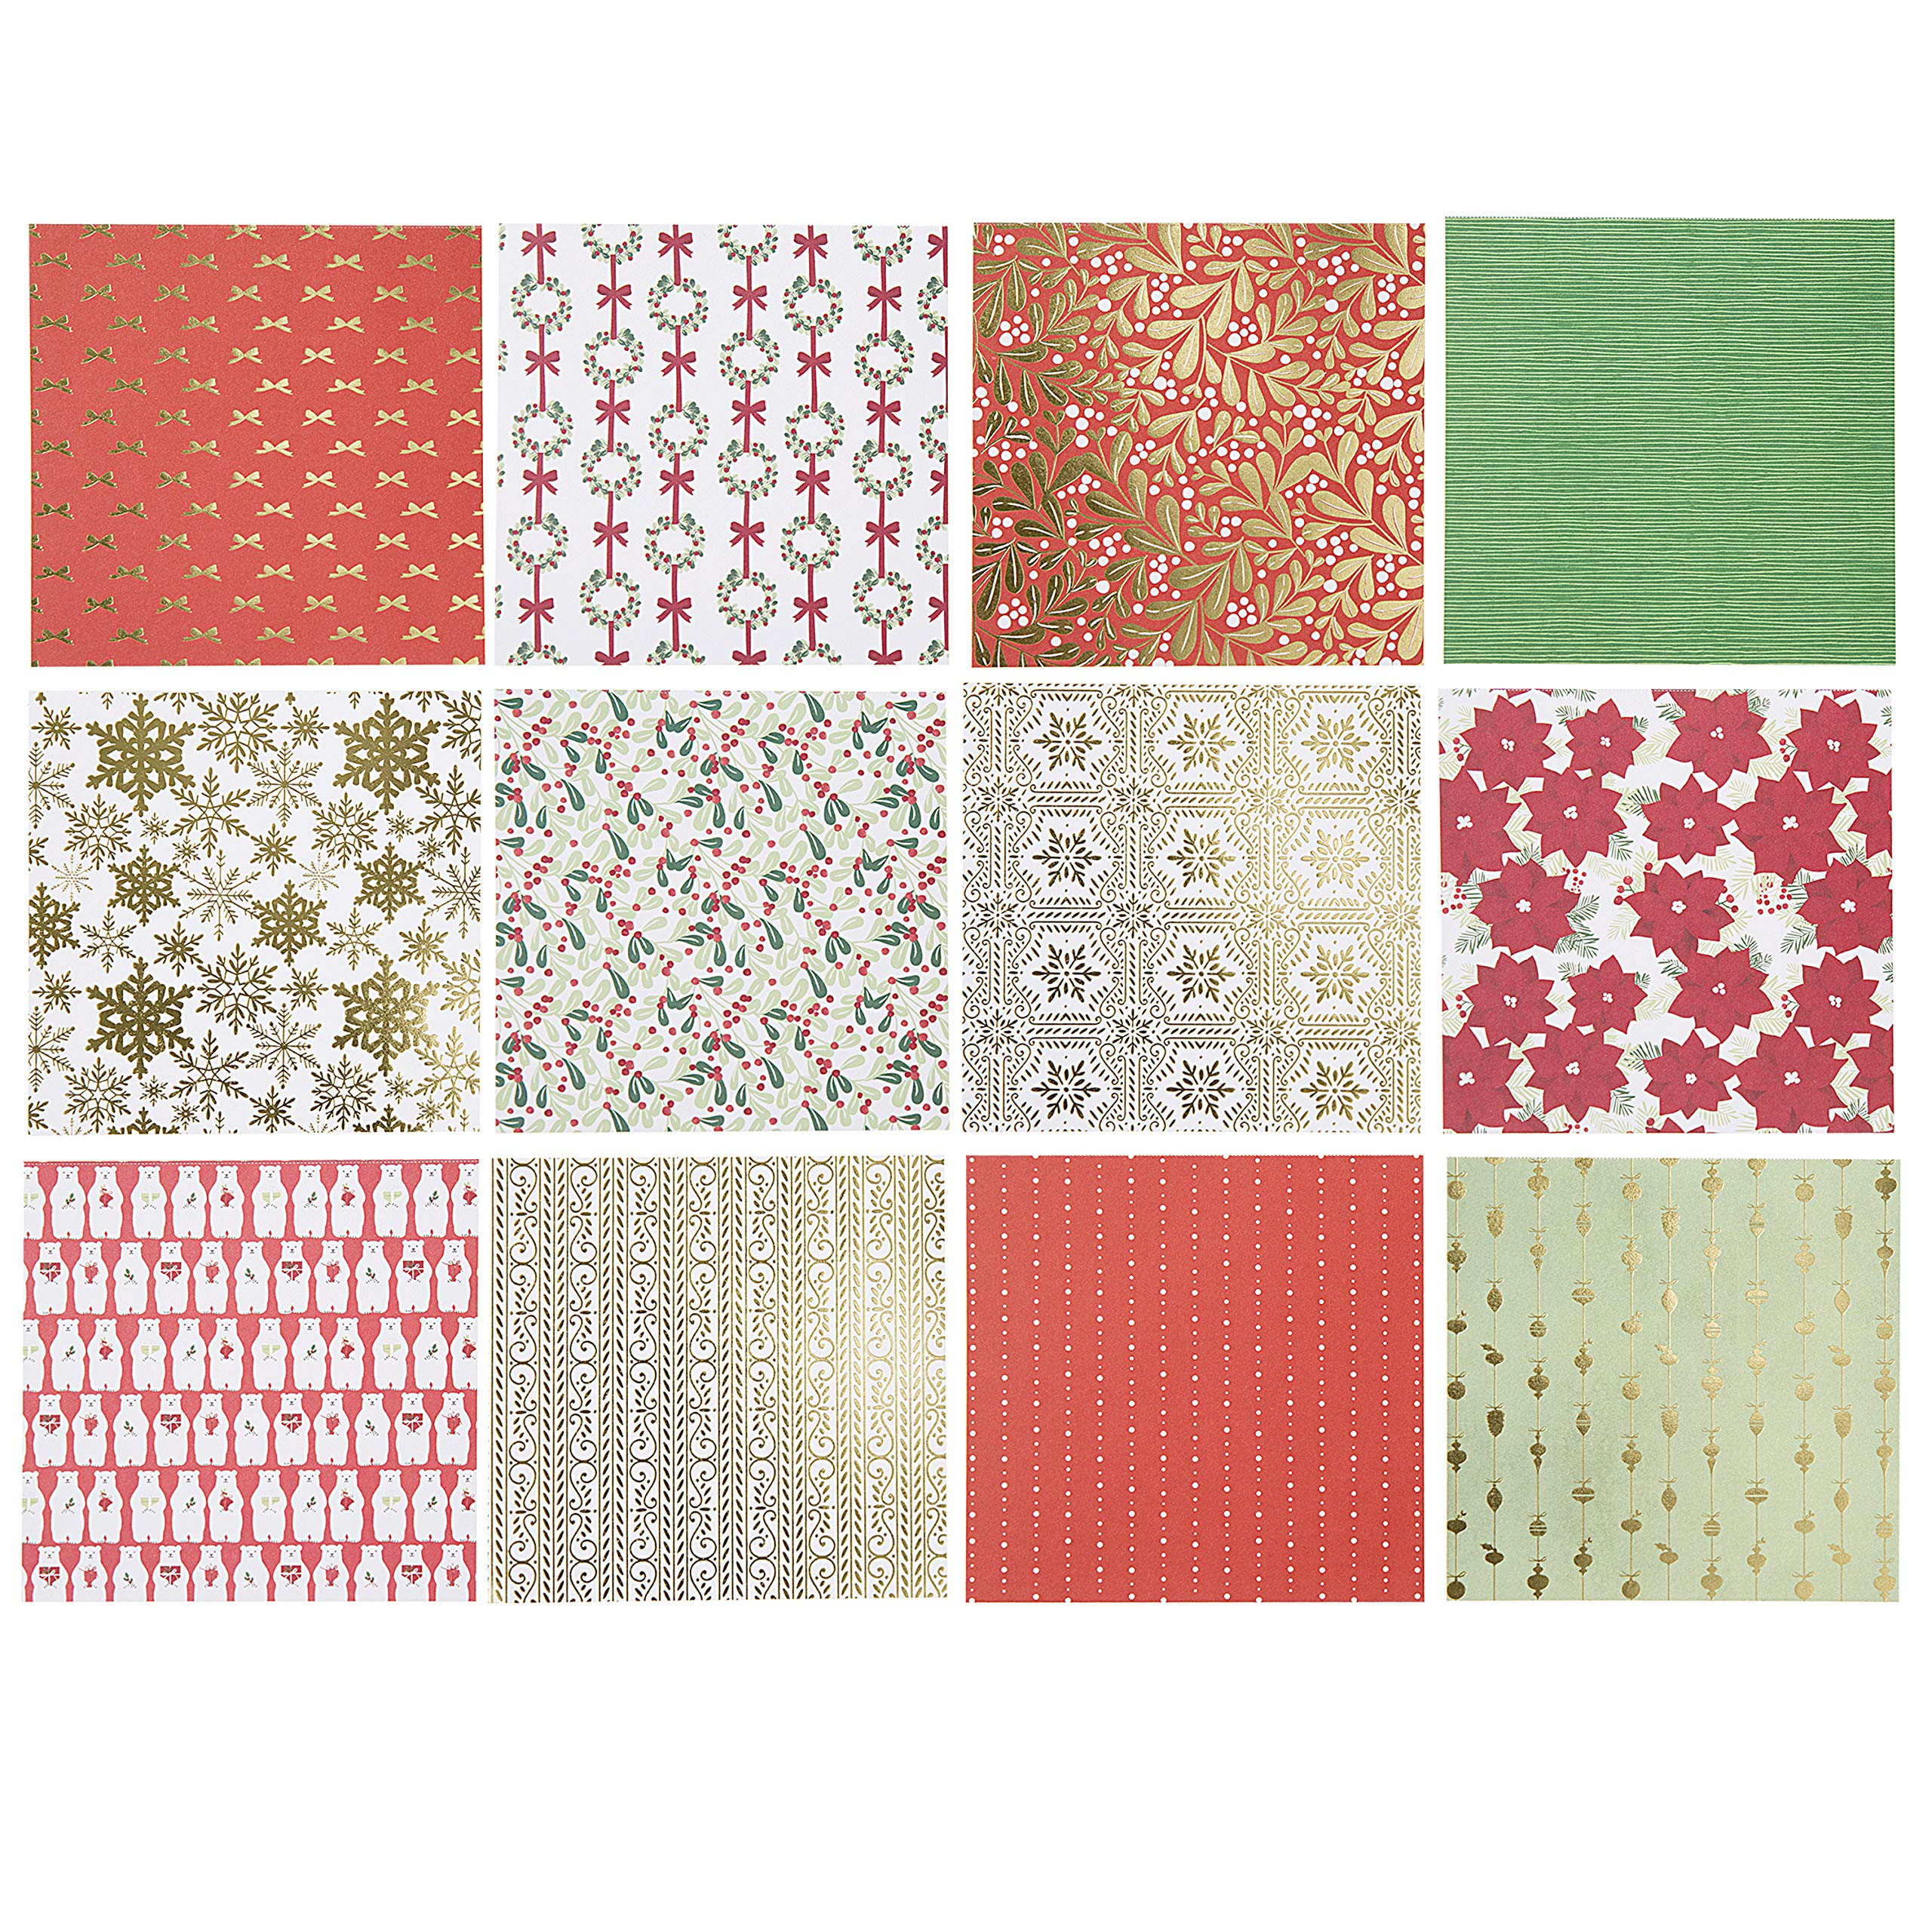 Martha Stewart 30068359 Paper Pad-Red/White/Greenery 6x6 Paperpad 6 x 6 inches Multicolor by Martha Stewart (Image #2)